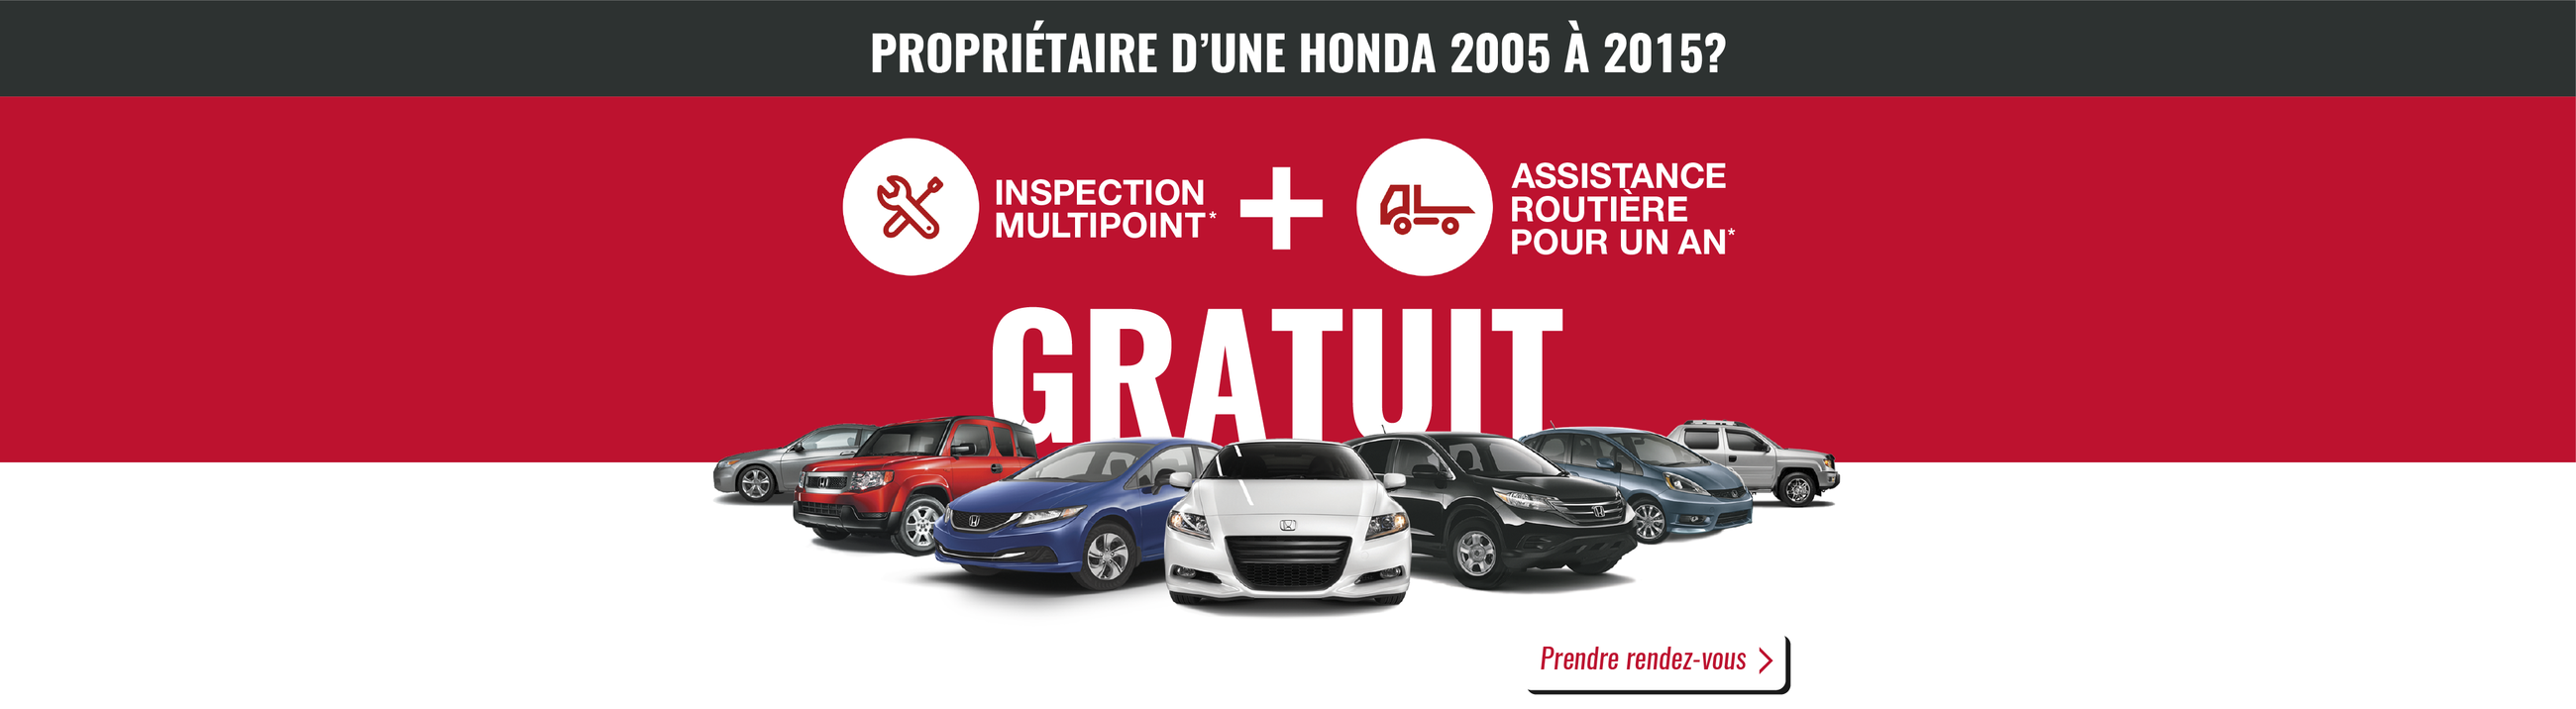 Inspection multipoint + assistance routière (Copie)